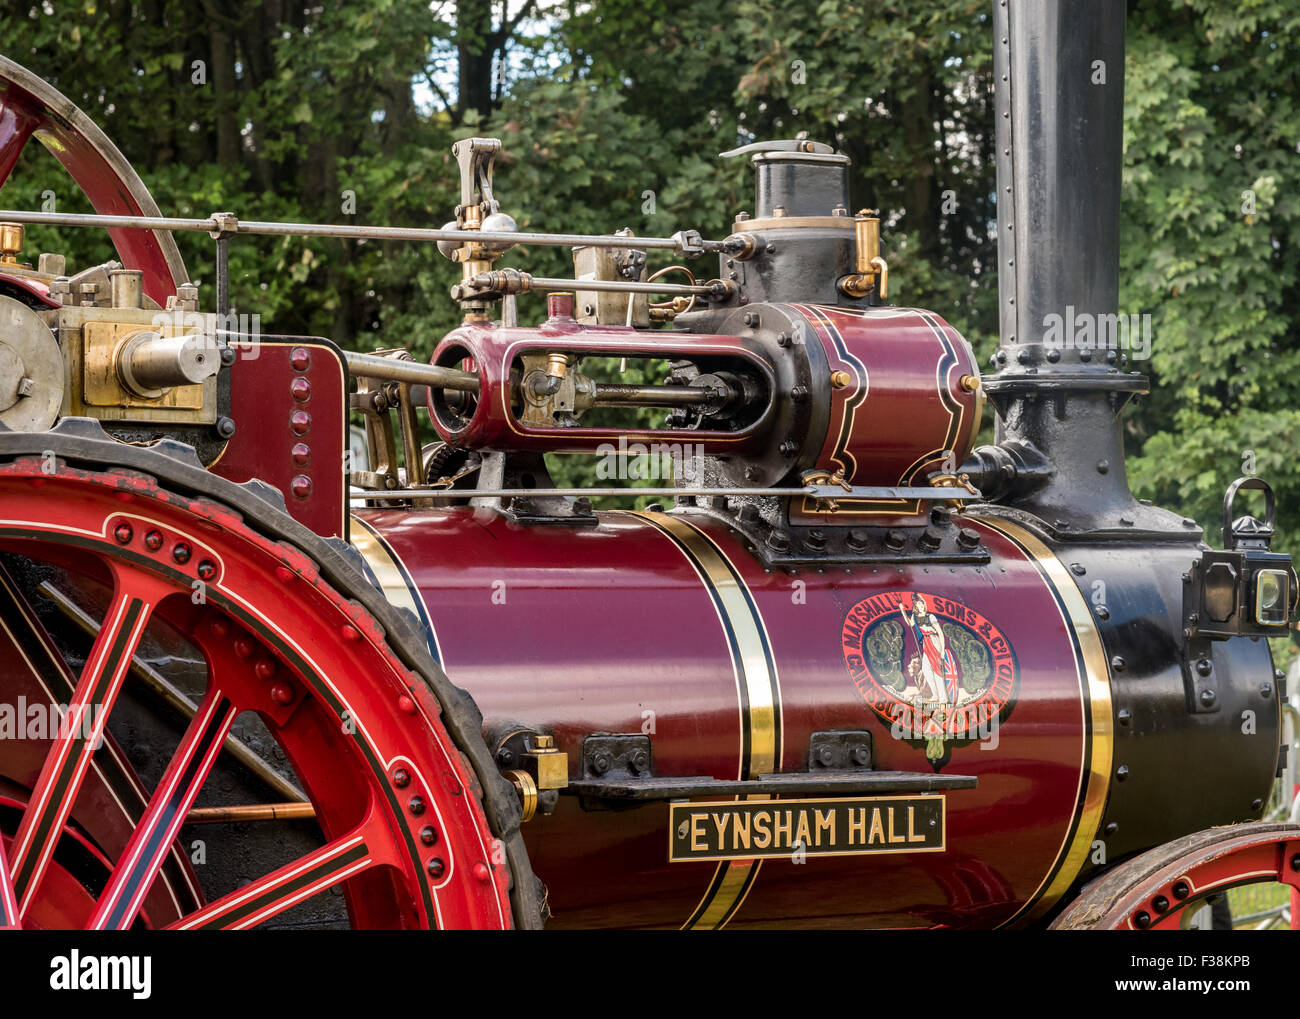 Detail of Vintage Steam Traction Locomotive - Stock Image